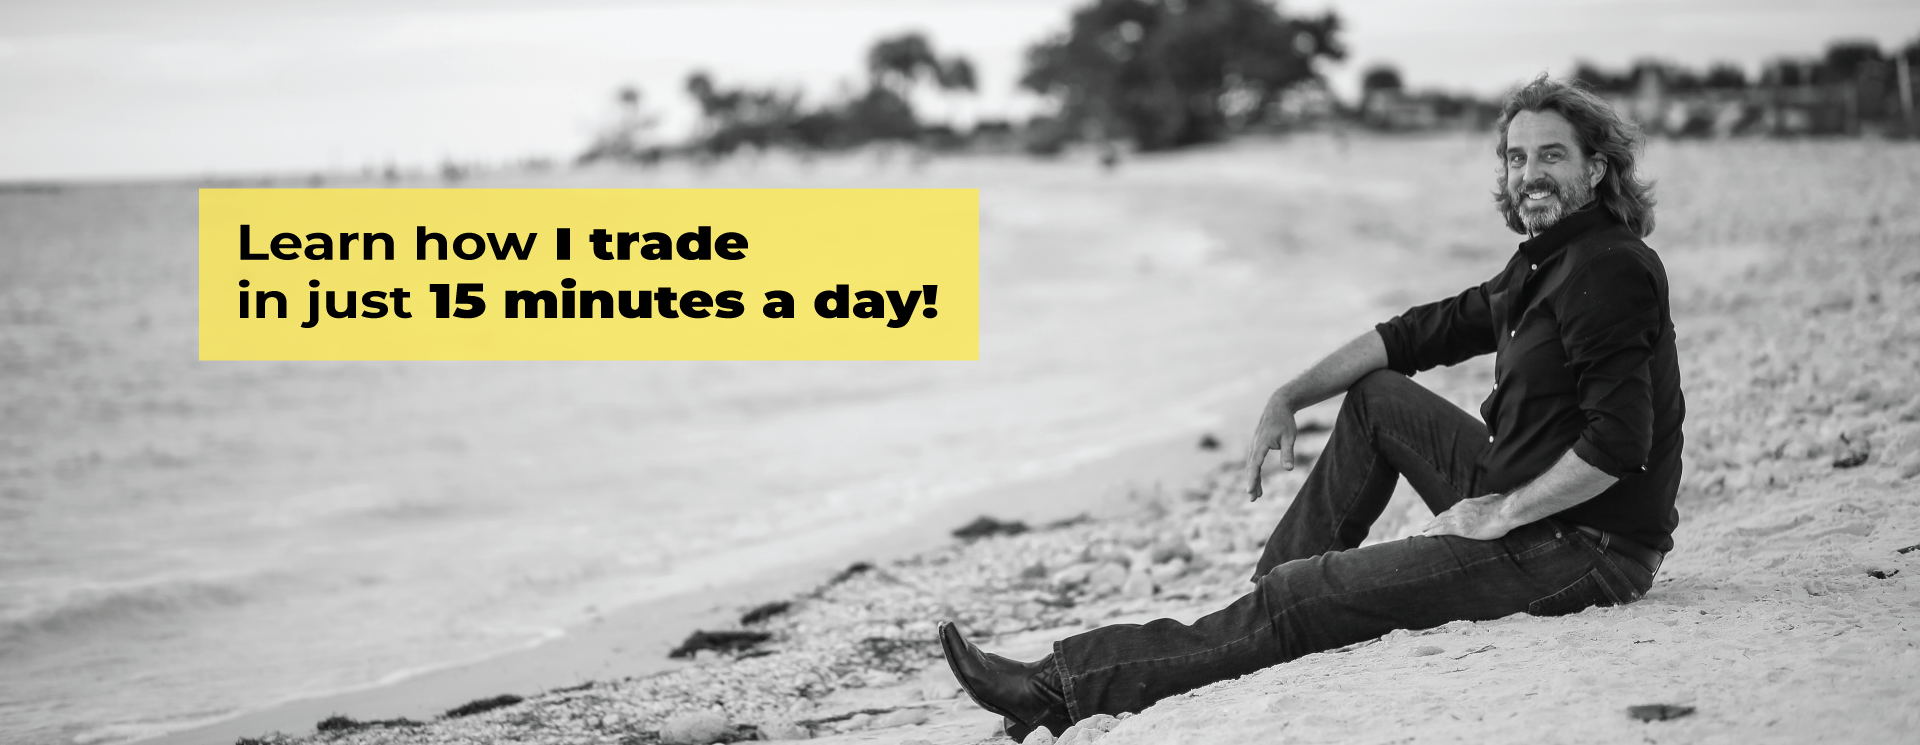 Learn how .I trade in just 15 minutes a day!